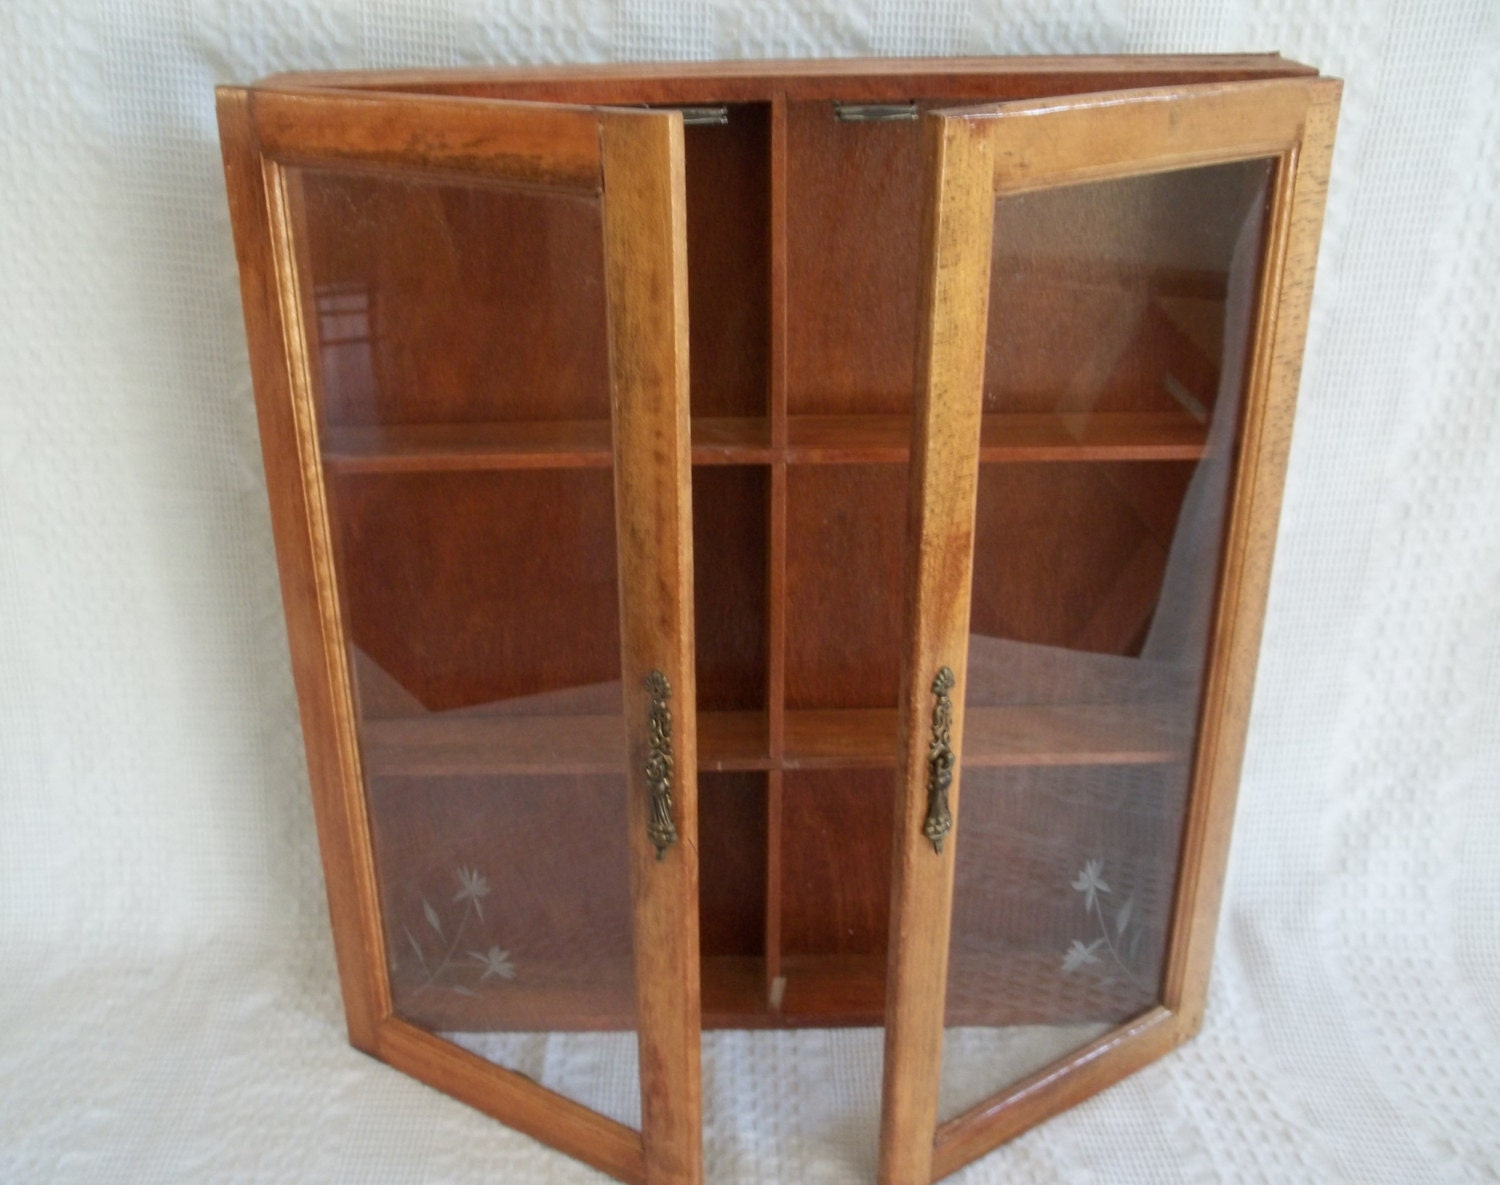 Vintage Wooden Wood Wall Display Cabinet Apothecary Spice Rack